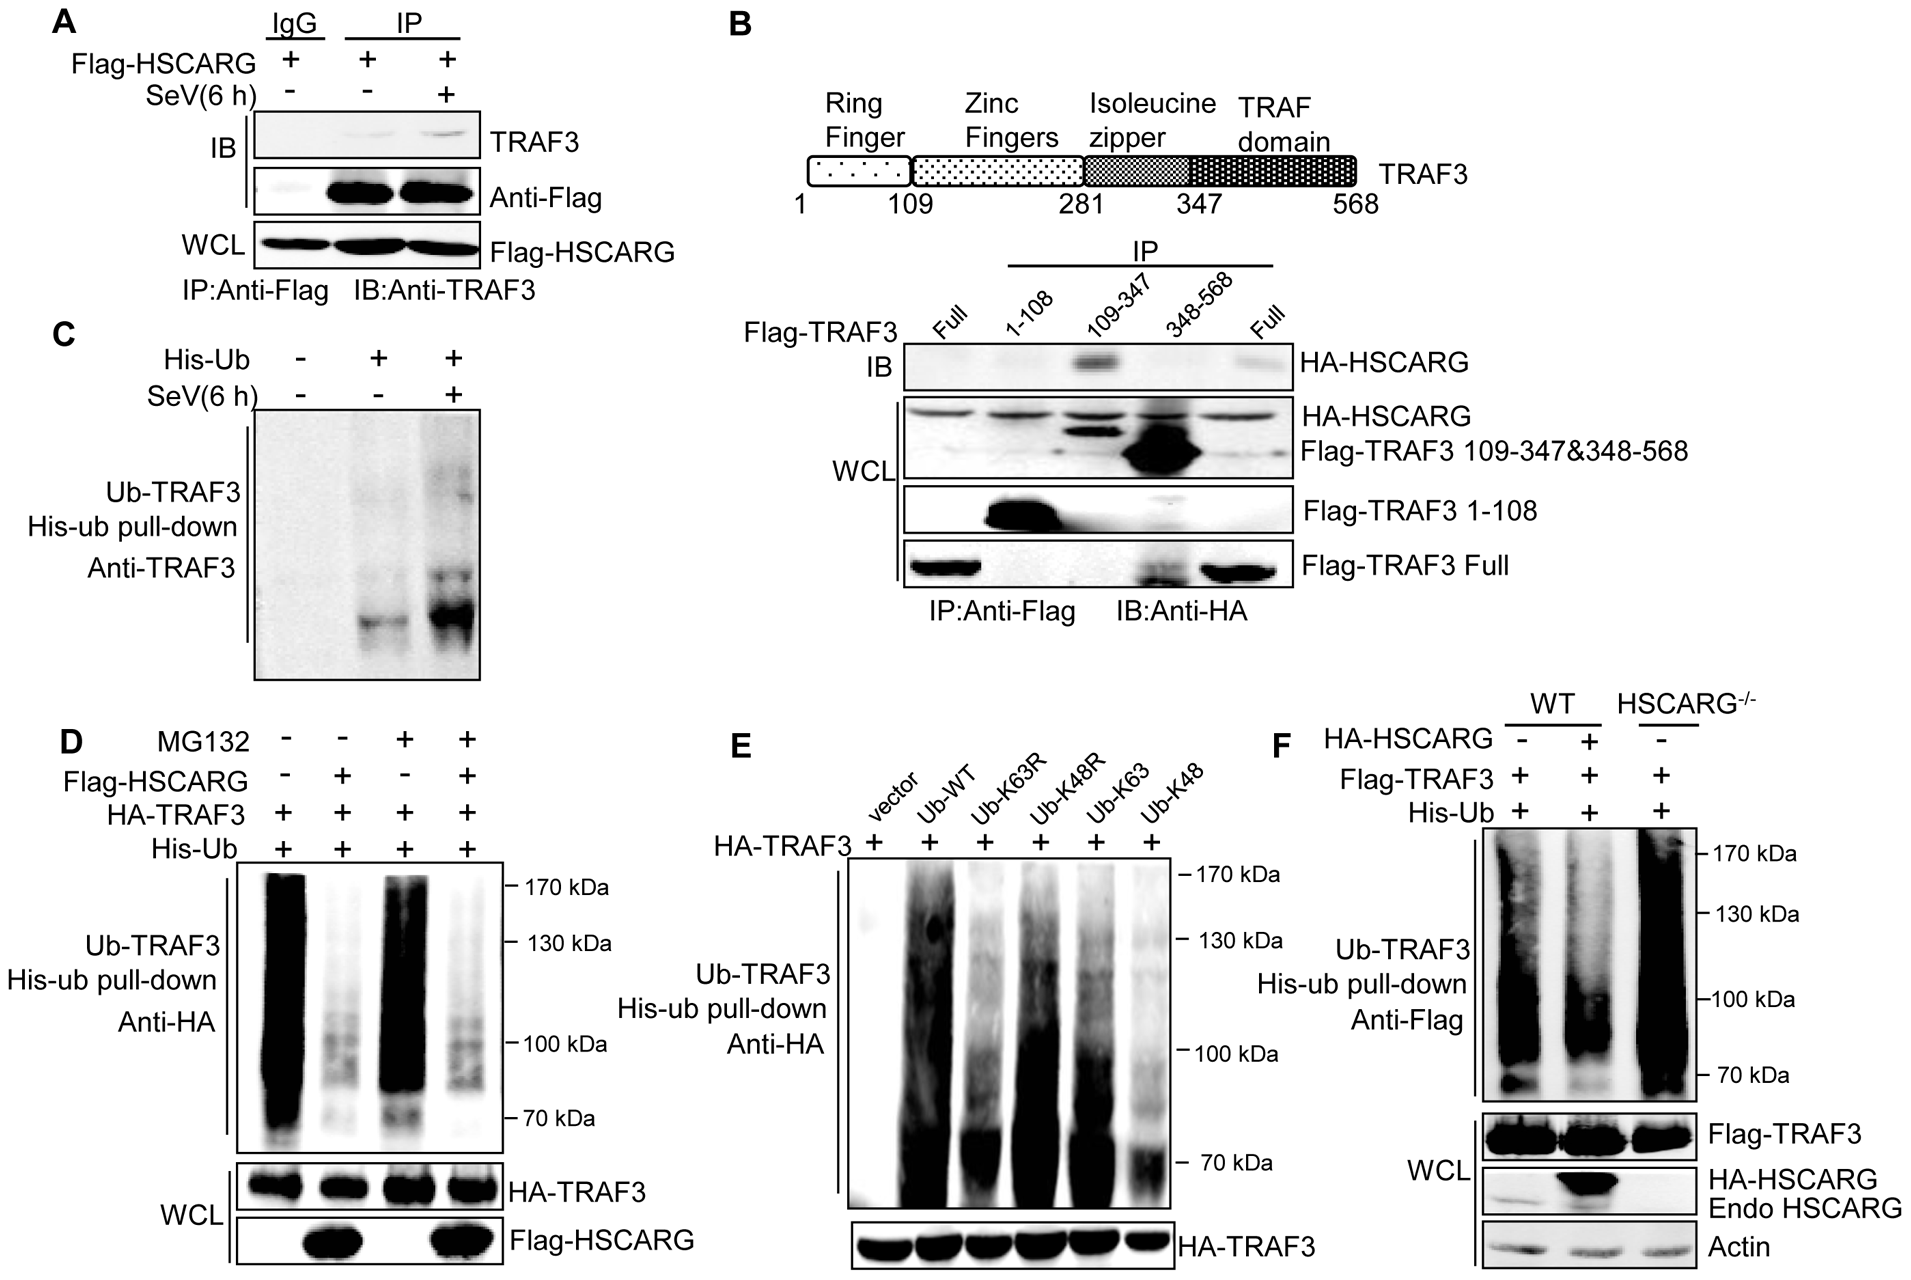 HSCARG interacts with TRAF3 and inhibits TRAF3 K63-linked ubiquitination.